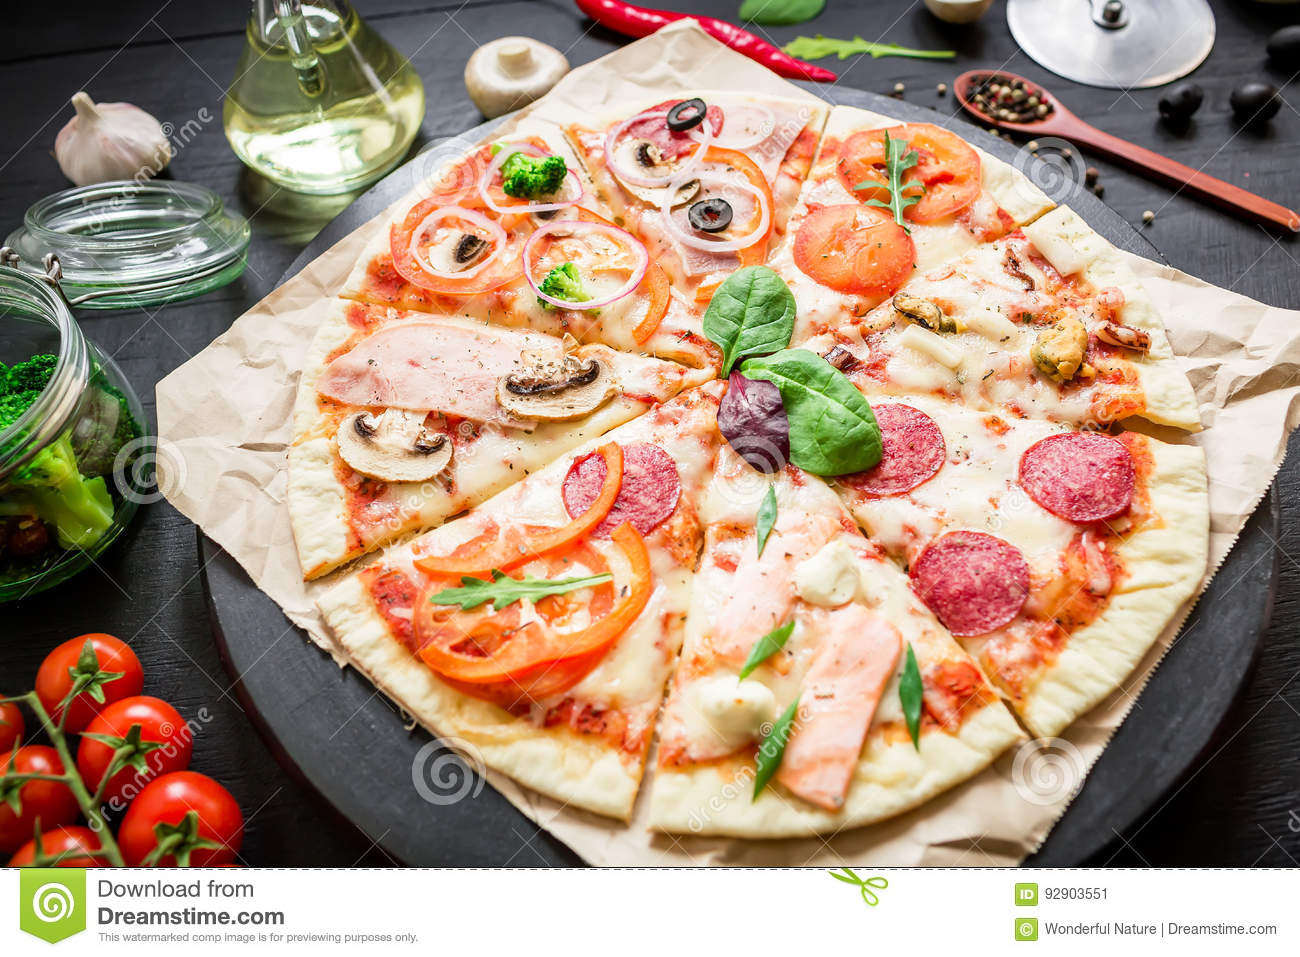 Italian food. Pizza with ingredients, spices, oil and vegetables on dark background. Flat lay, top view.